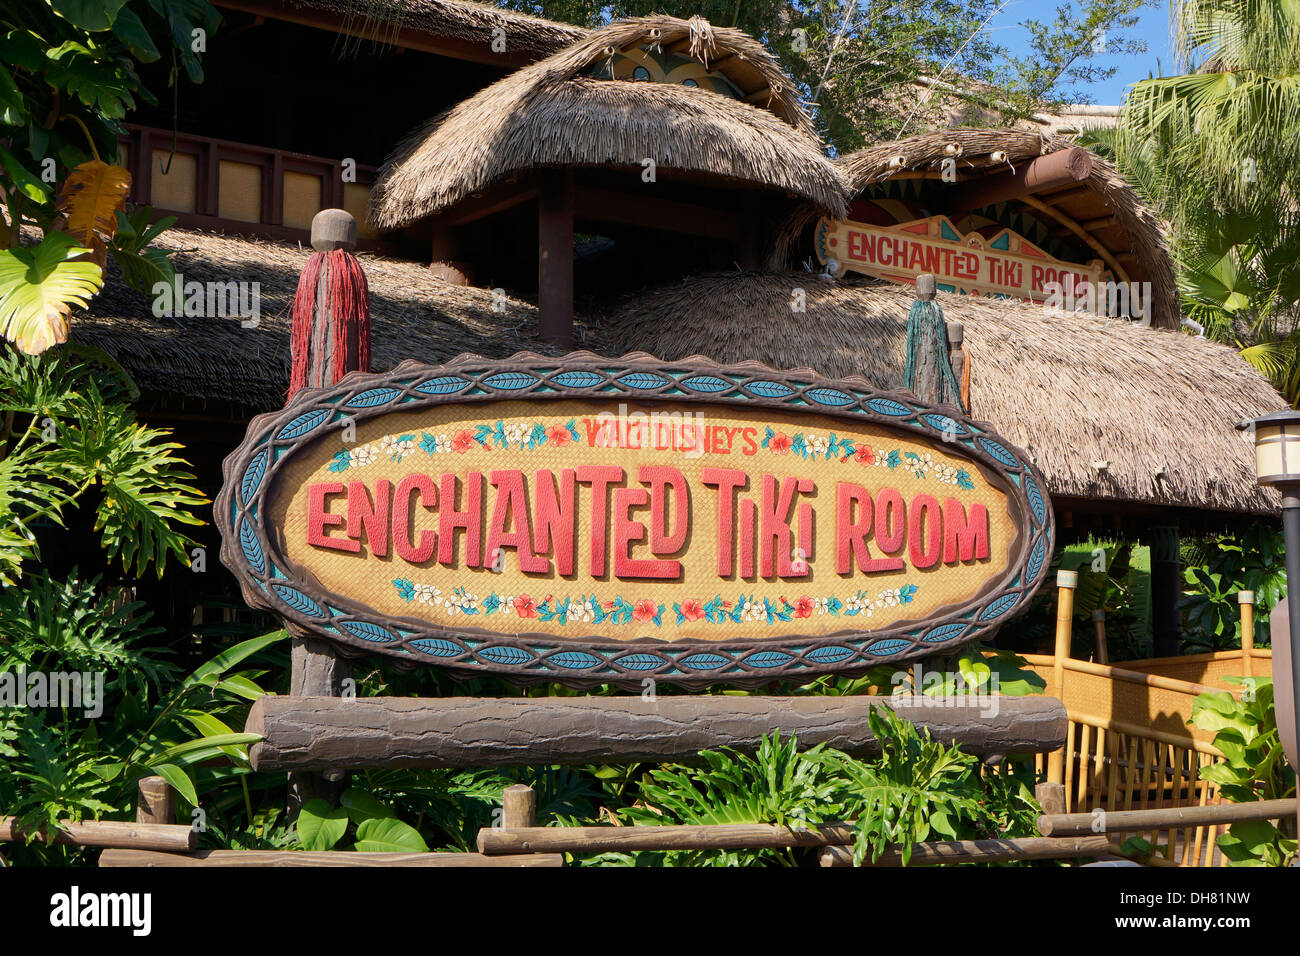 Verzauberte Tiki Room im Disney World Resort in Orlando Florida Stockbild